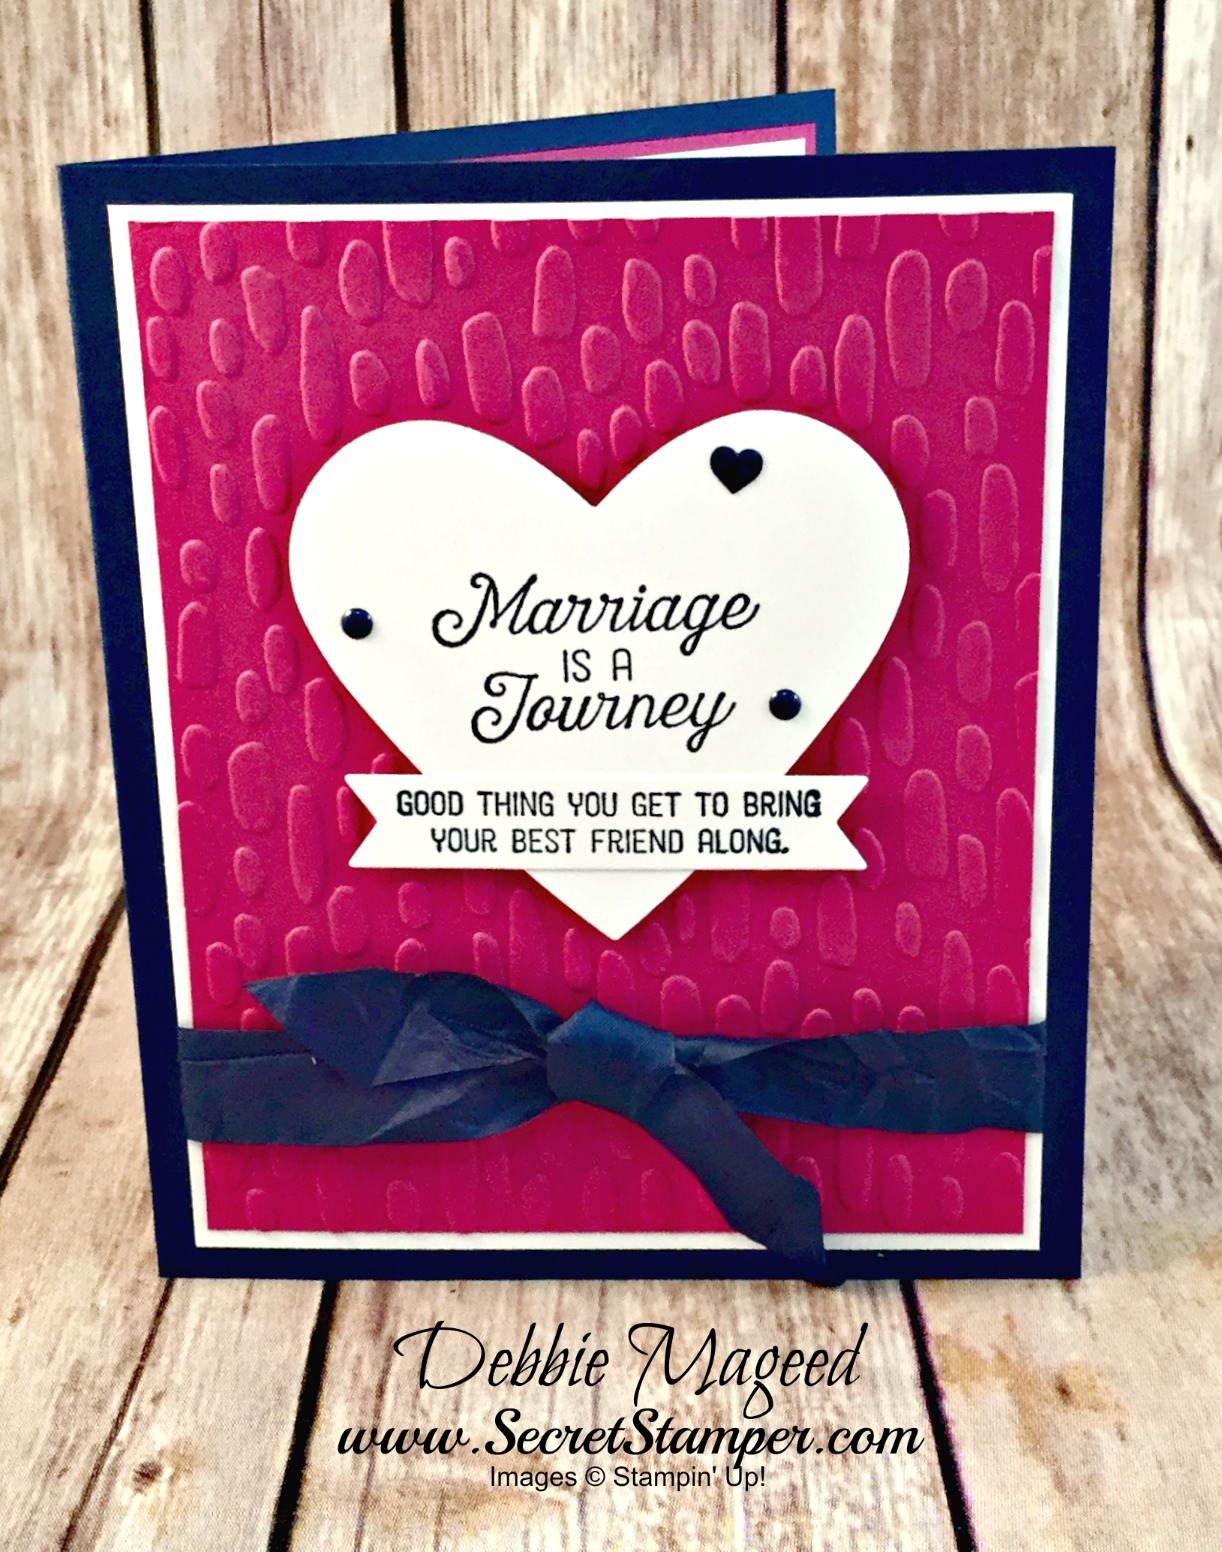 Wedding anniversary cards ideas archives secrets to stamping